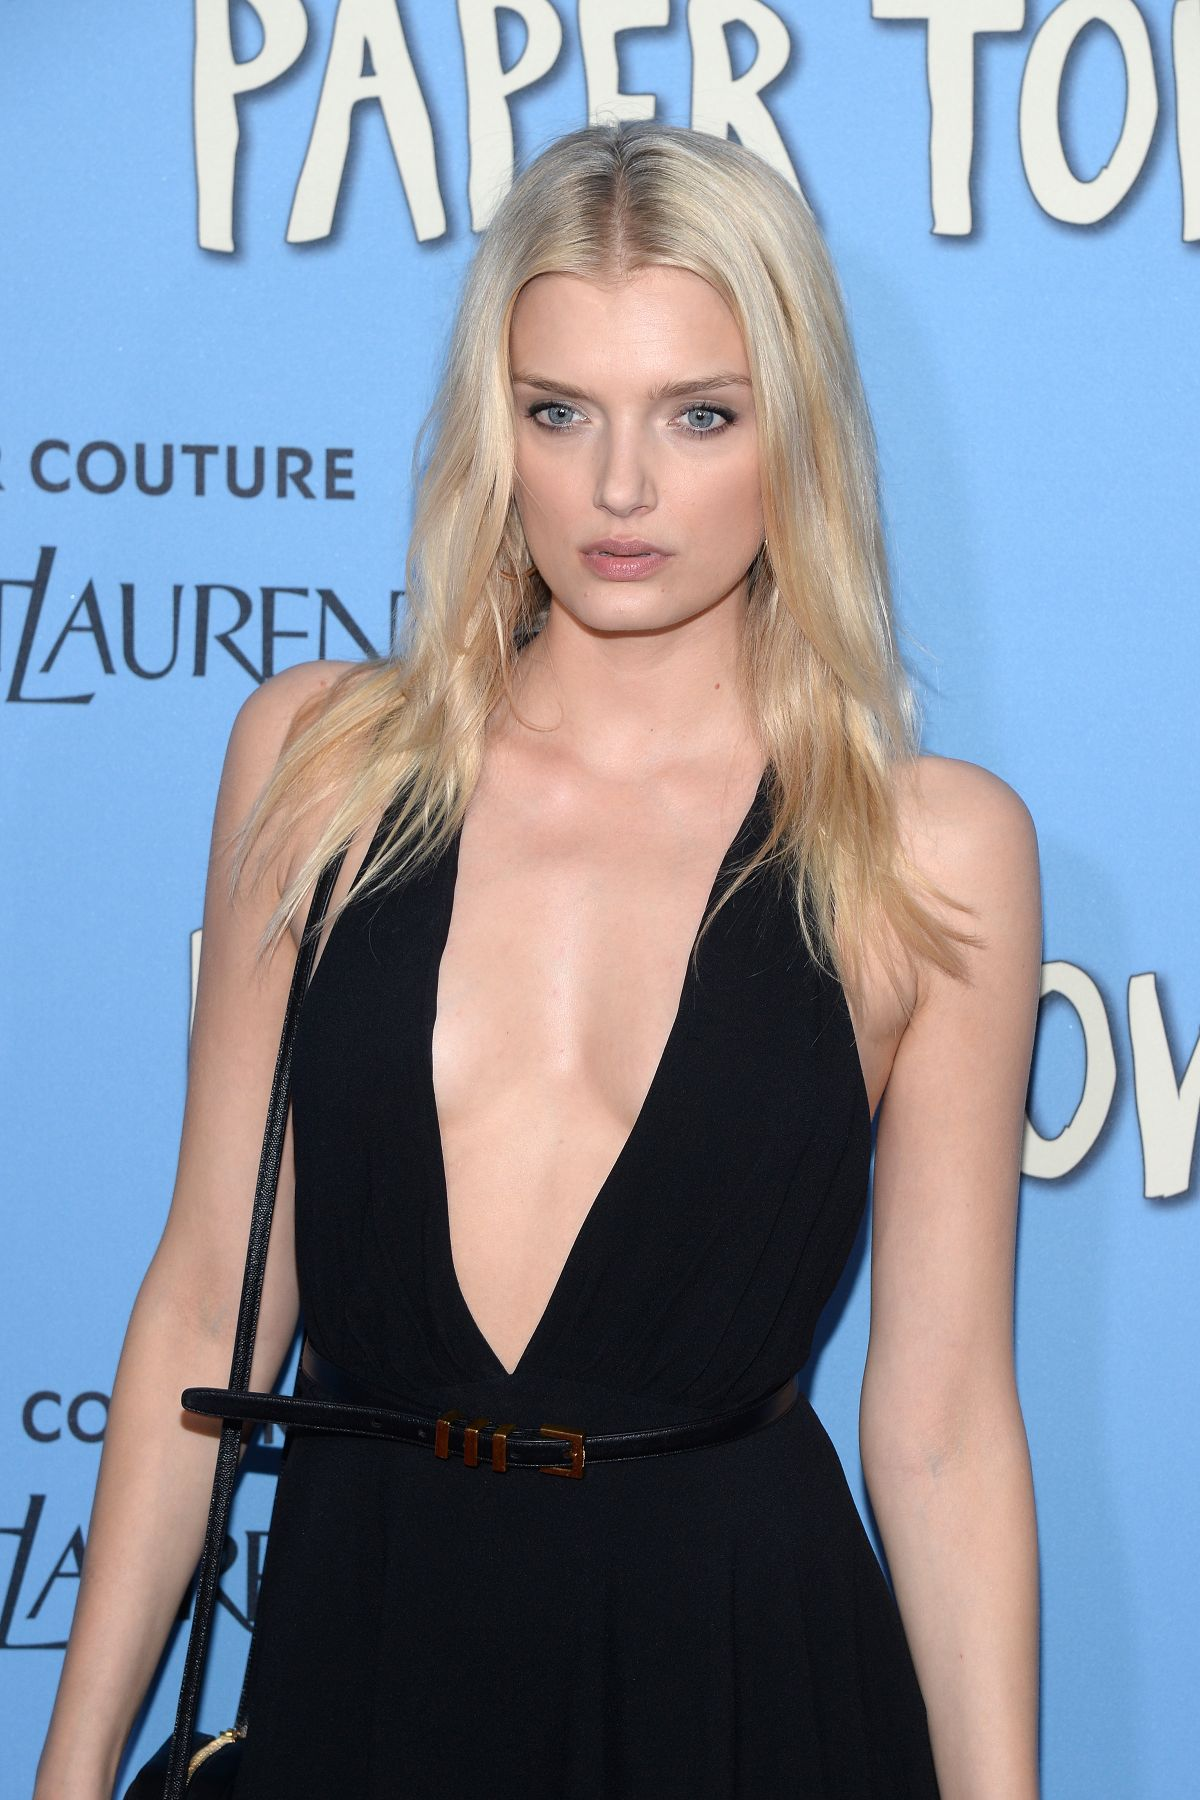 Lily Donaldson Hot Revealing Dress - Lily Donaldson Hot Revealing Dress